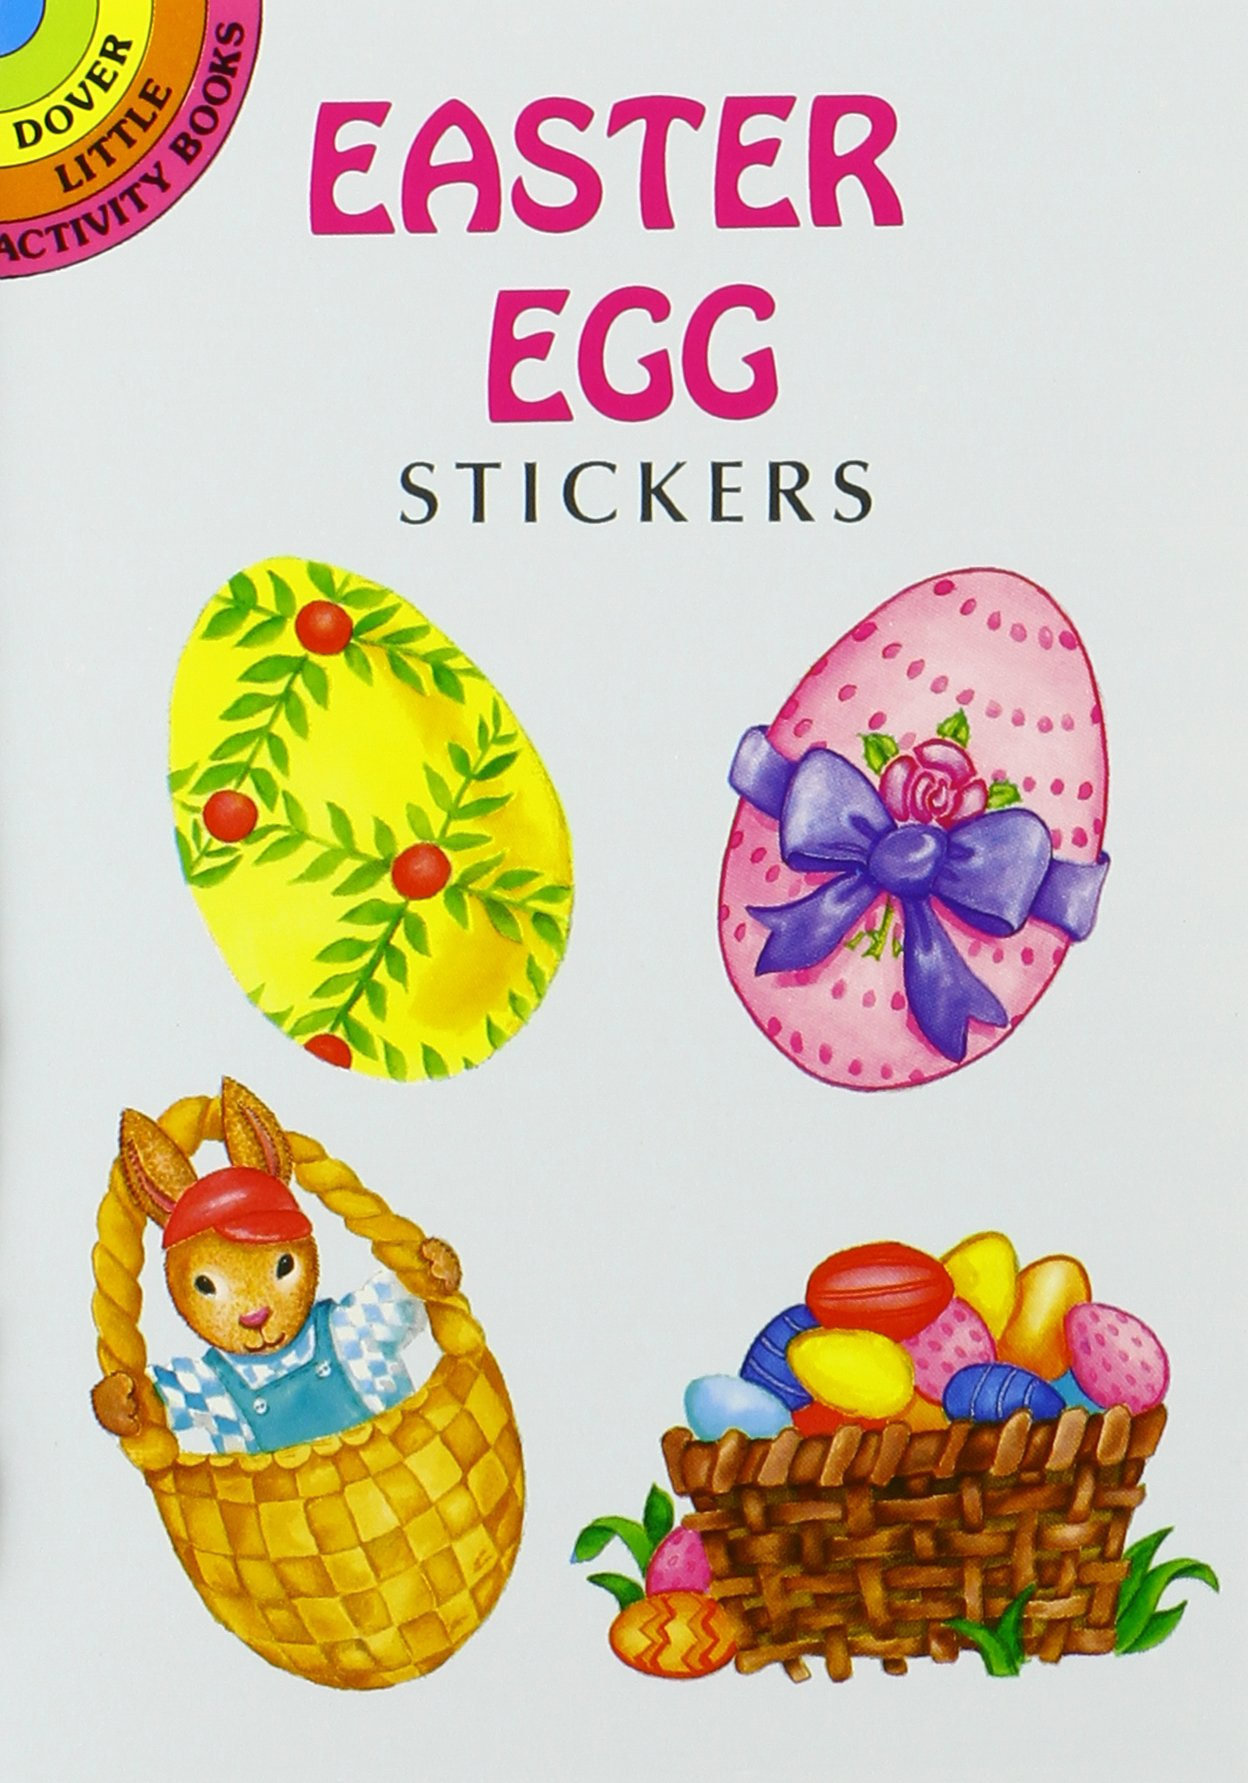 10 Easter Fun Books: Stickers, Stencils, Tattoos and More (Dover Little Activity Books) by Dover Publications (Image #6)